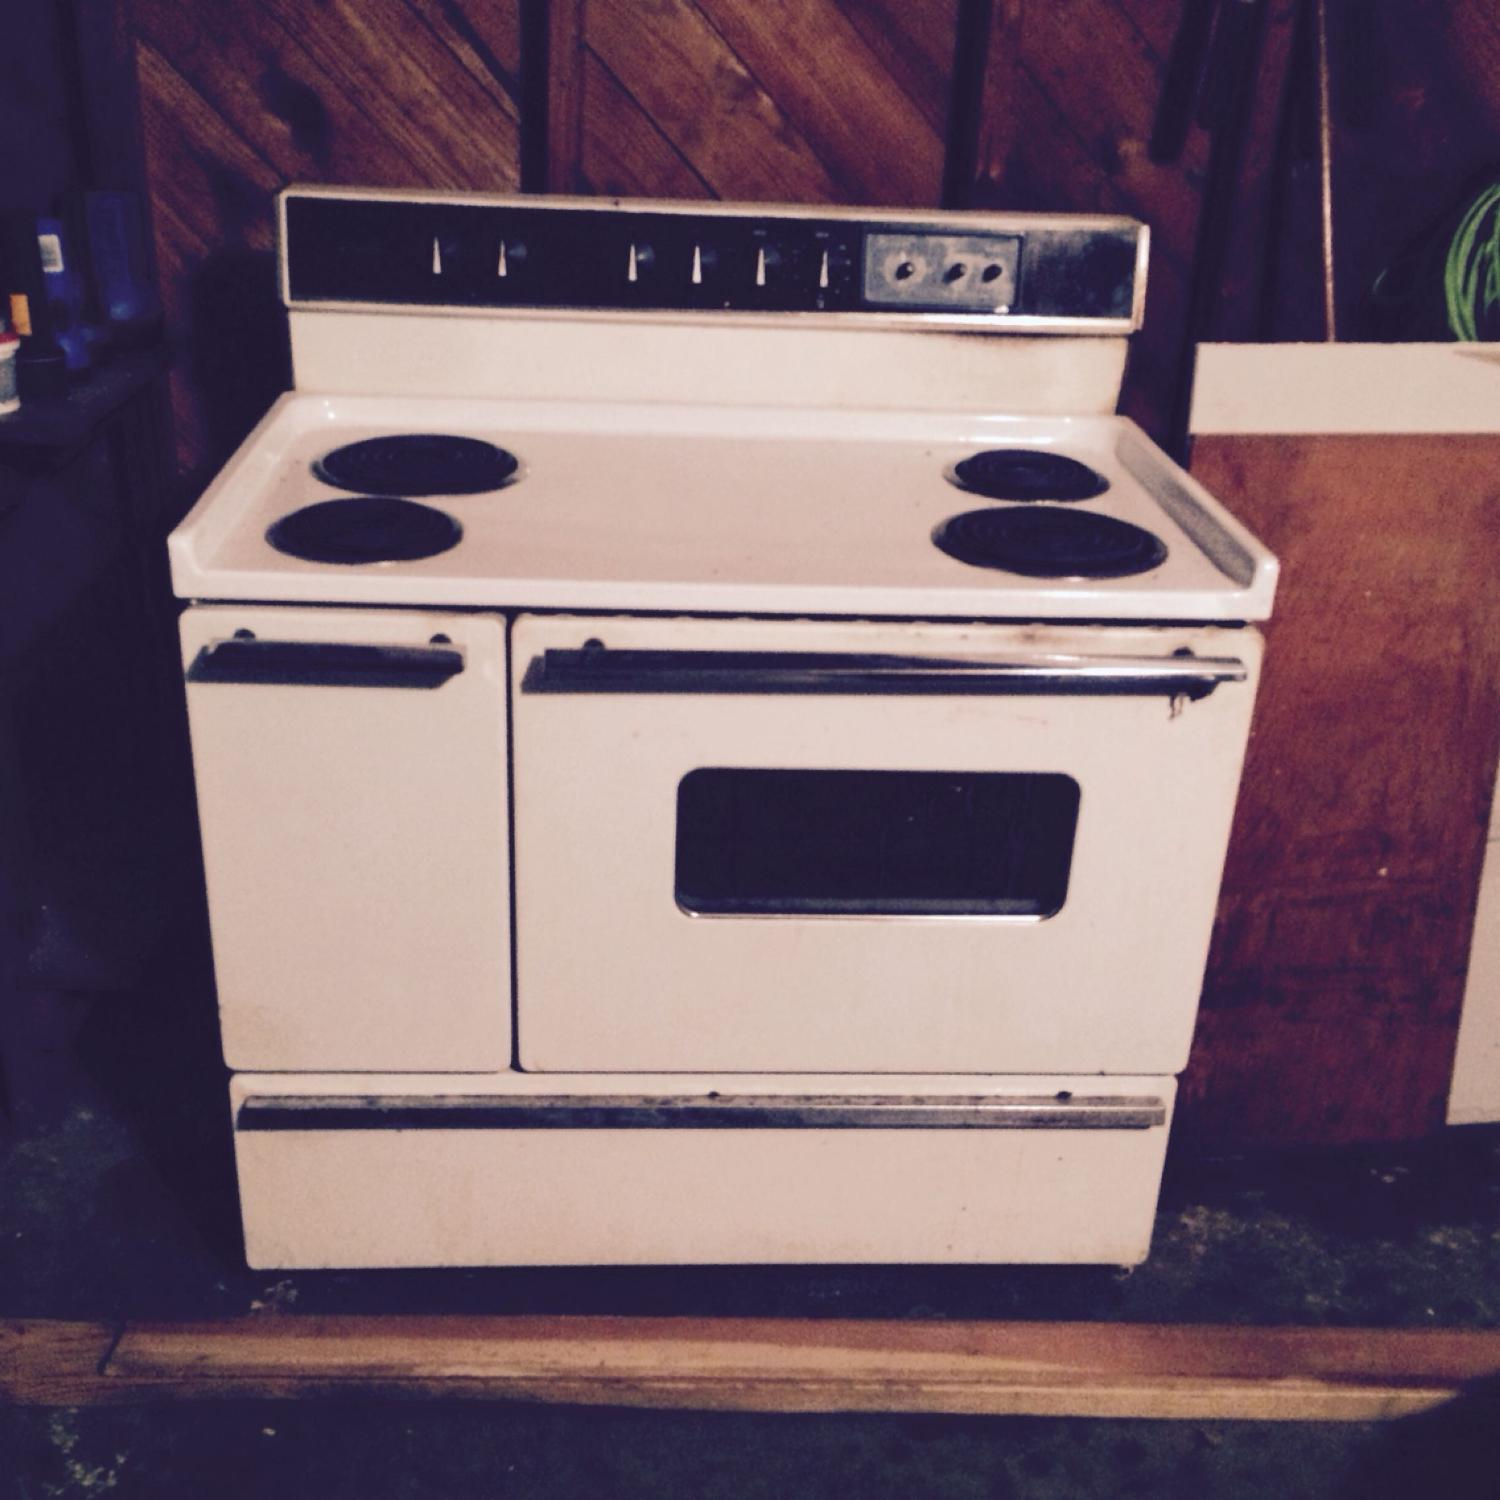 frigidaire stove self cleaning instructions